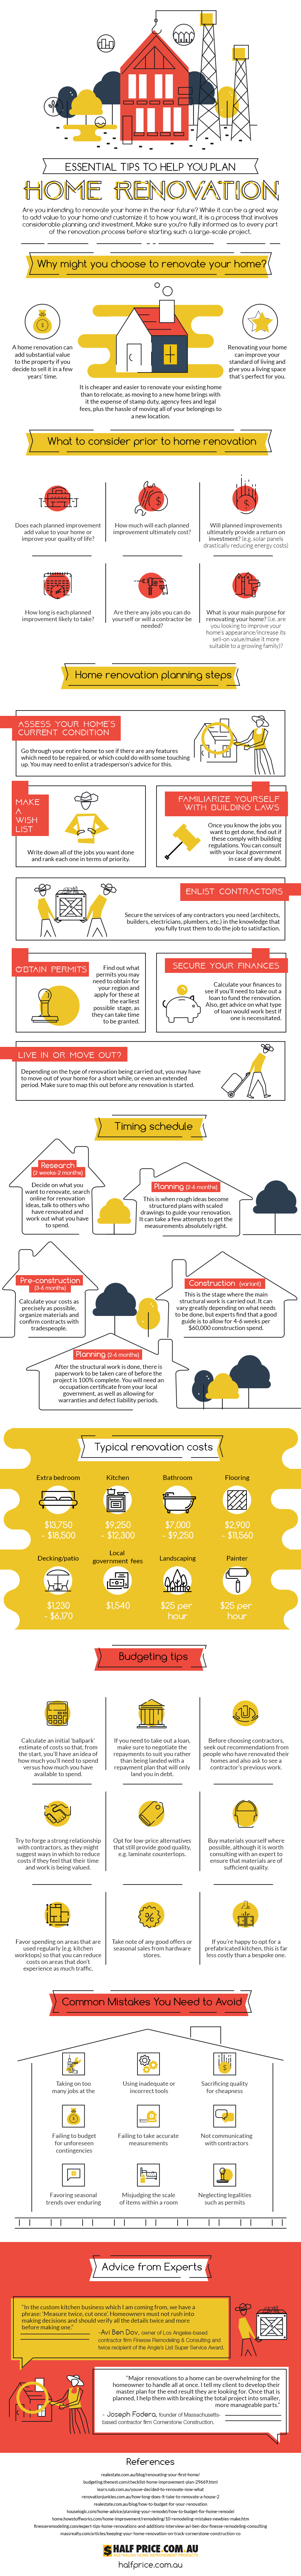 The Essential Guide to Home Renovation: From Ideation to Fruition - Infographic